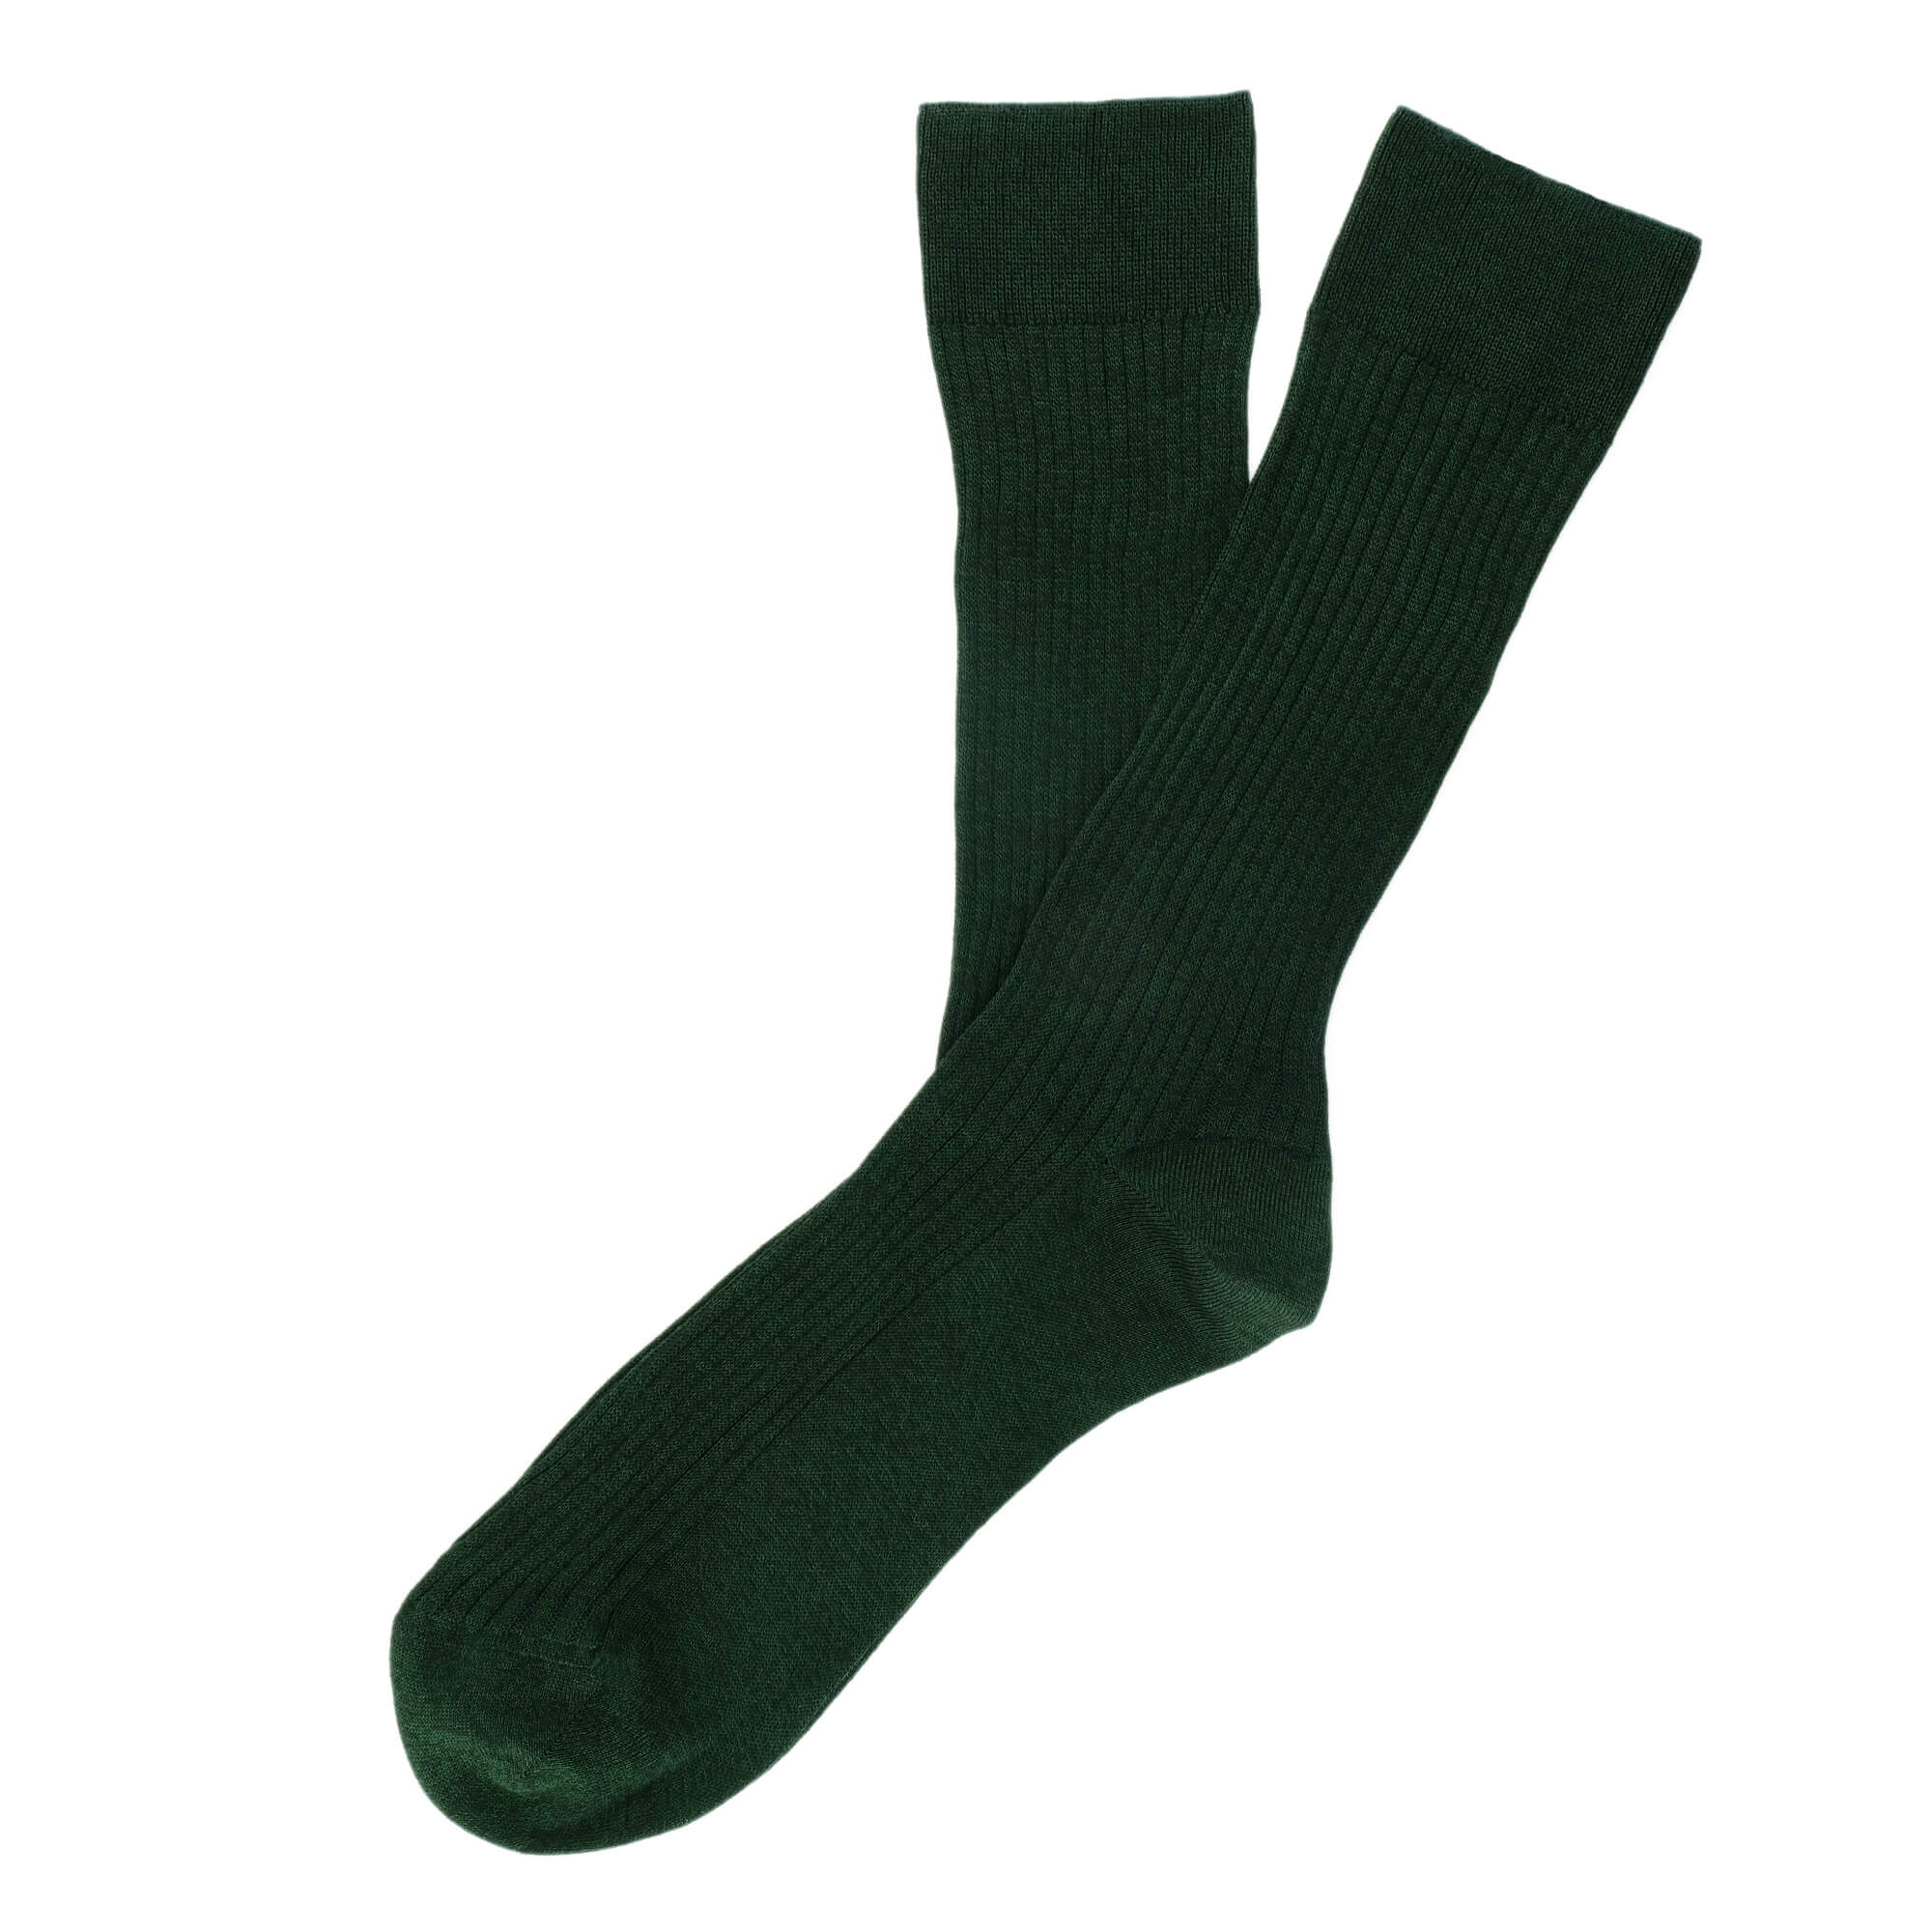 Mens Socks - Thousand Ribs Men's Socks - Green⎪Etiquette Clothiers